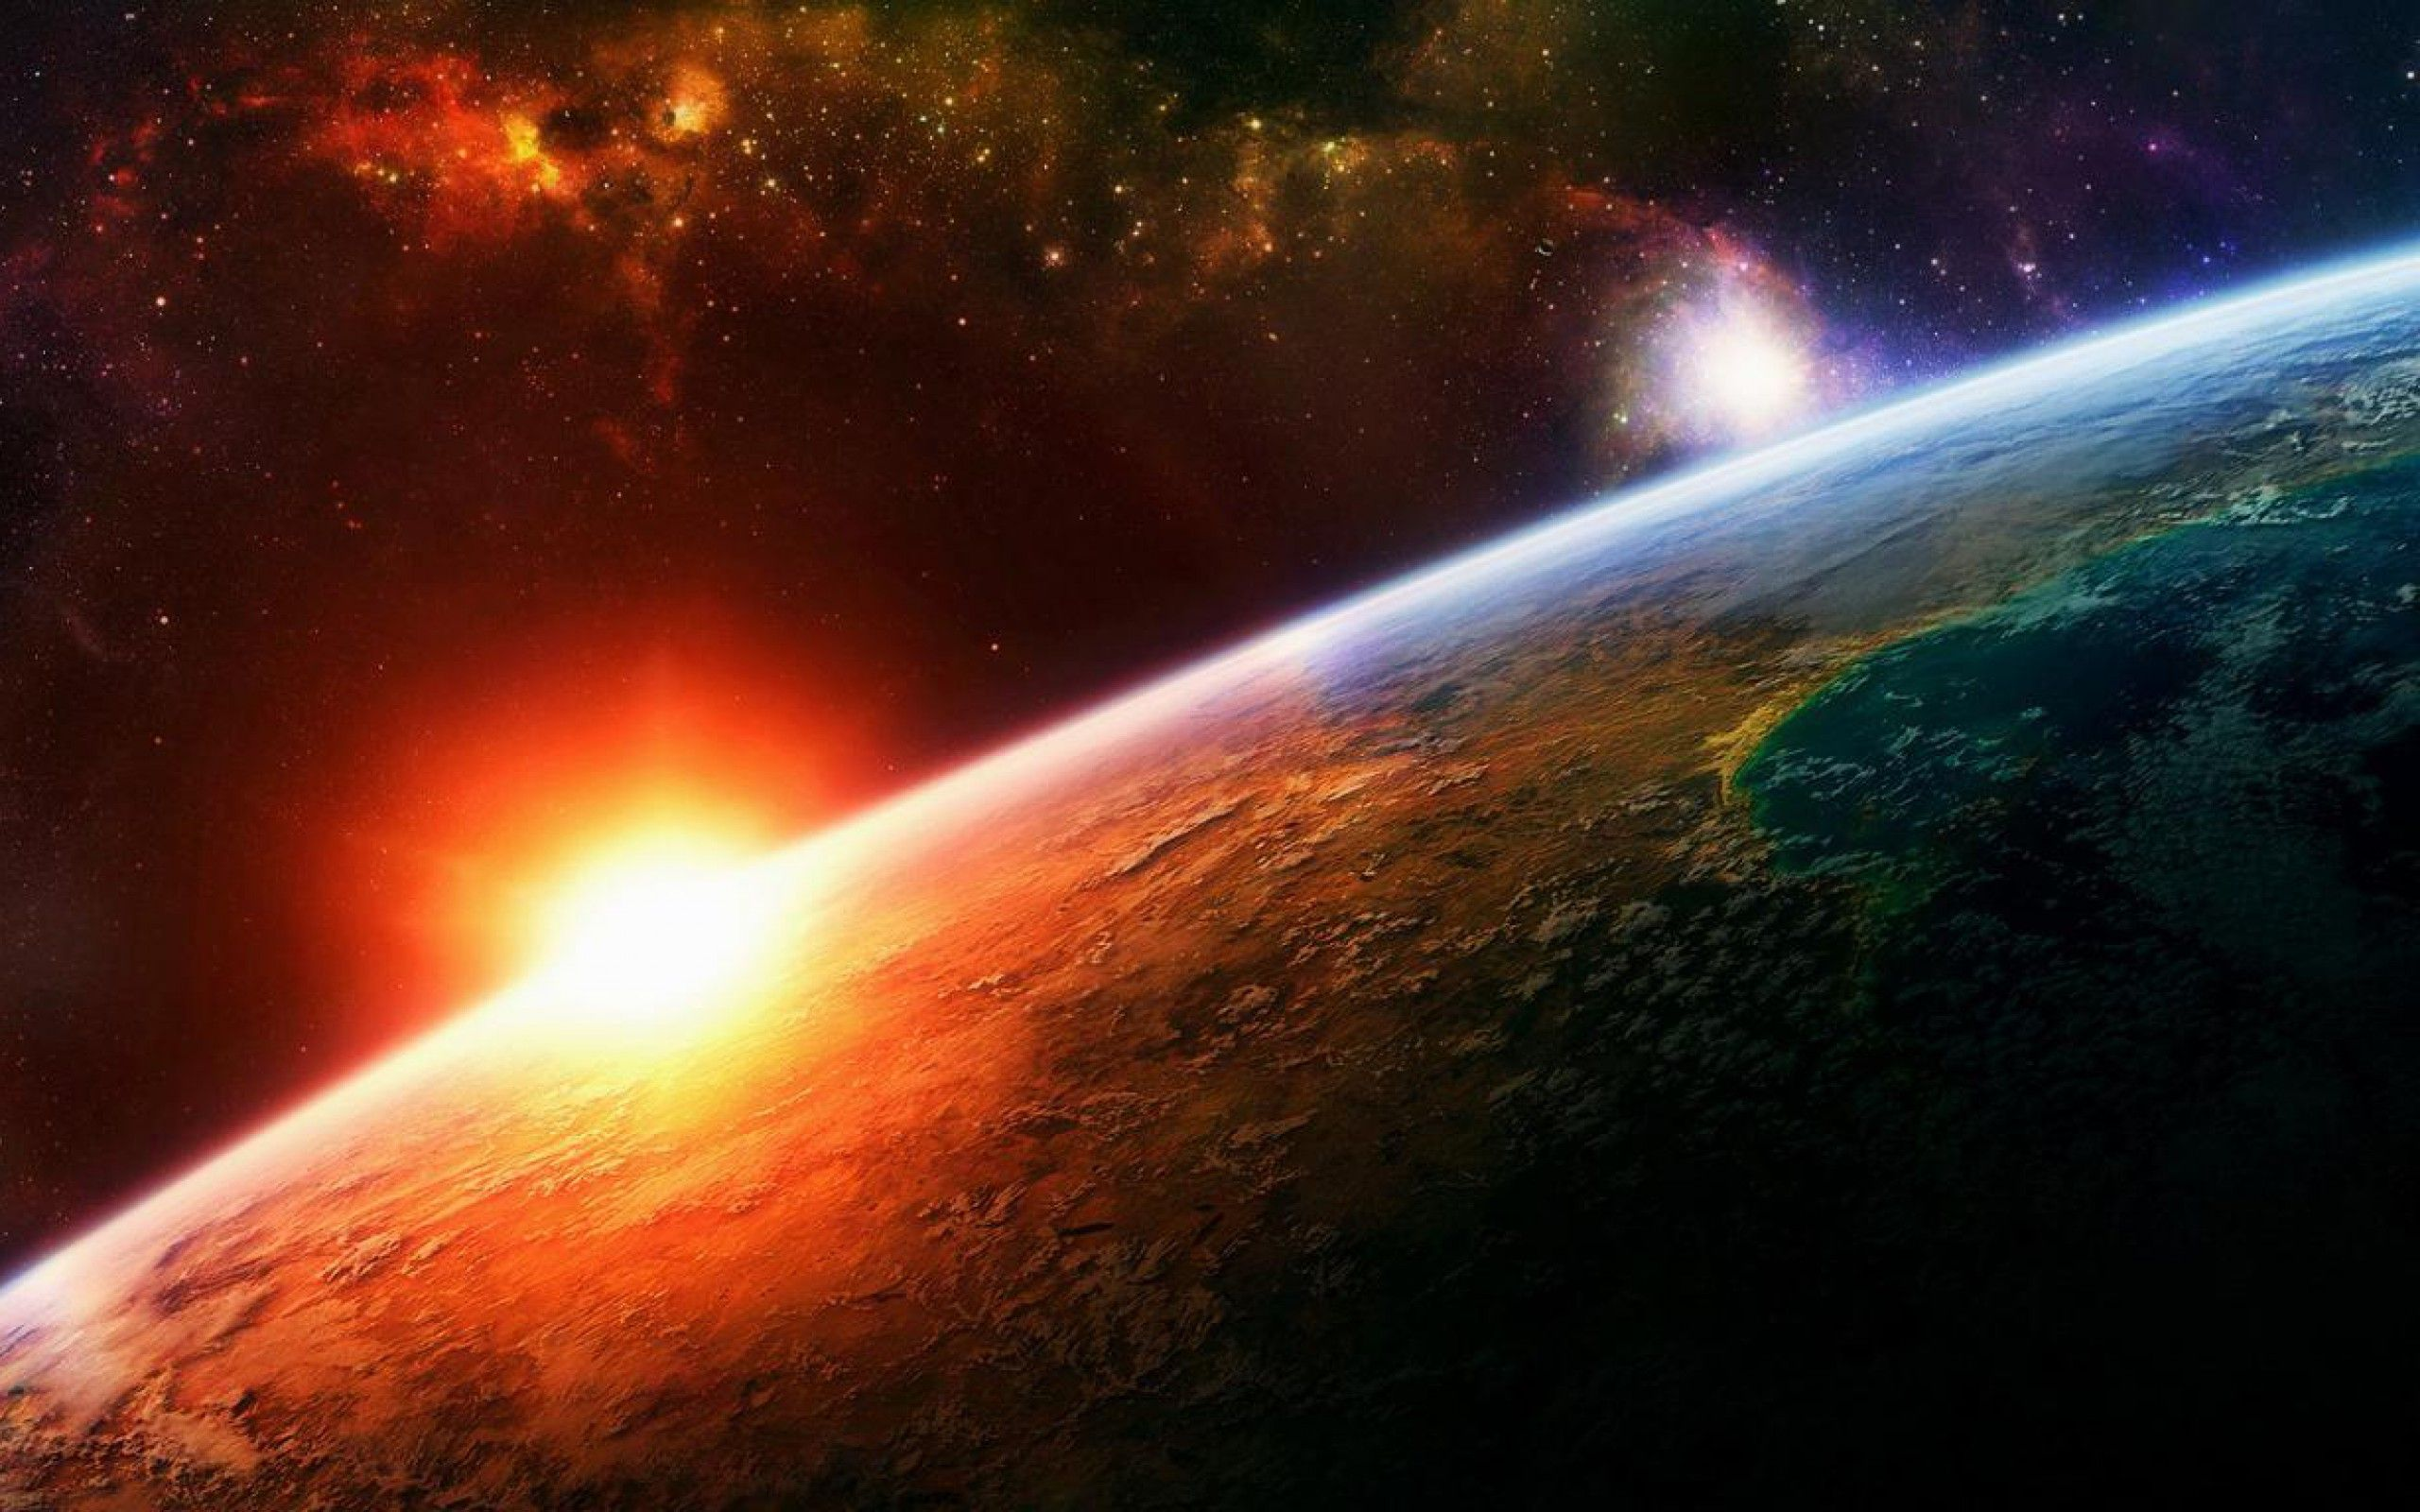 45 Space Sunset Wallpapers   Download at WallpaperBro 2560x1600